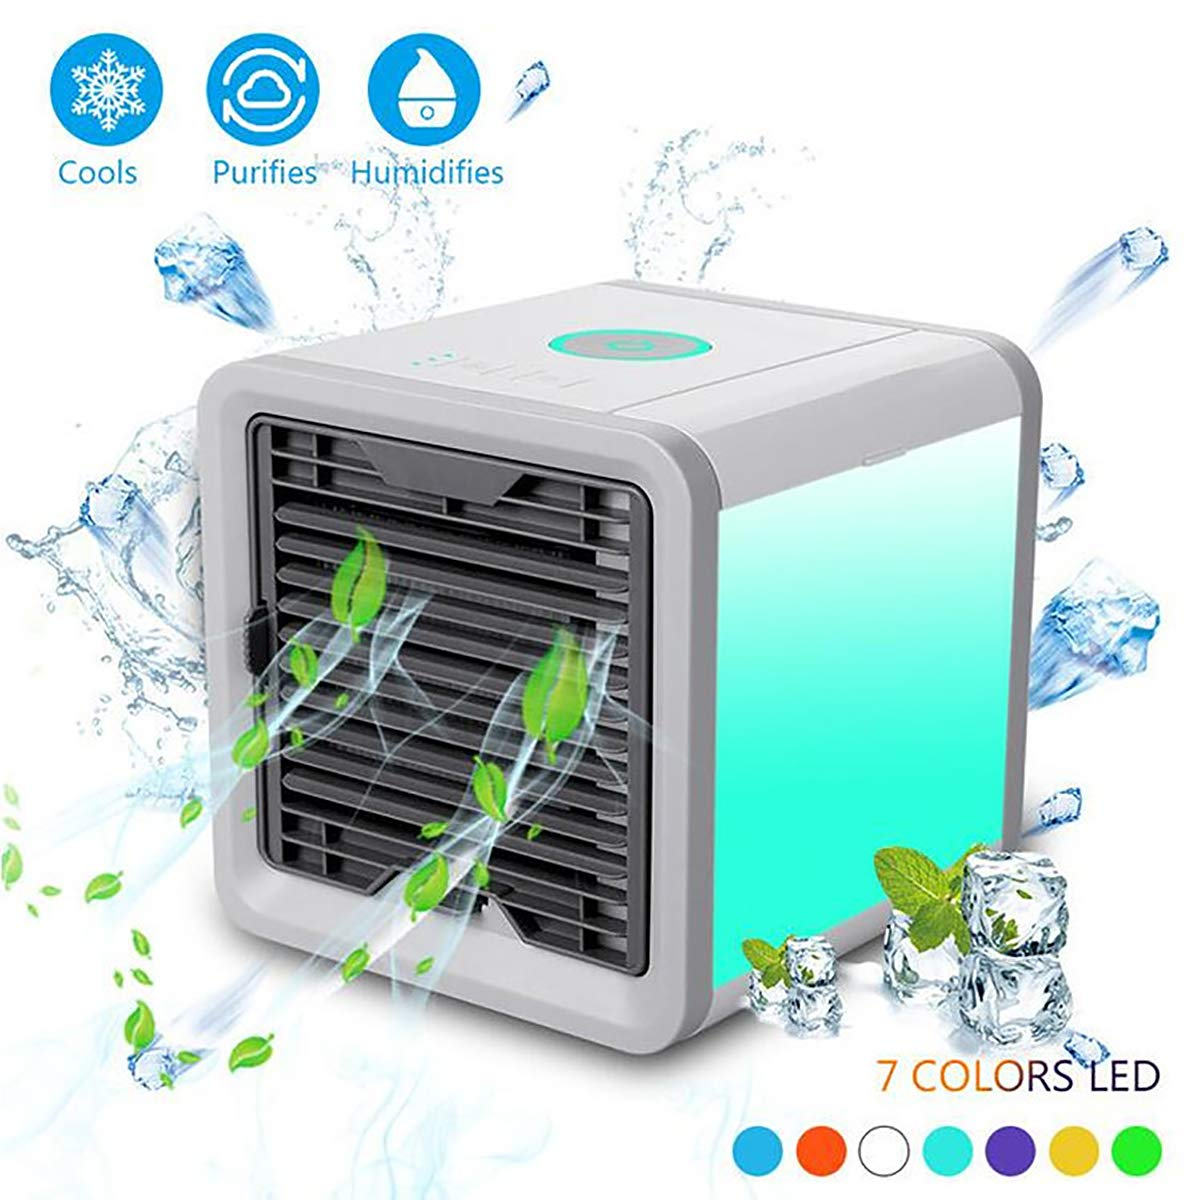 Humidifiers Portable Mini Size Table Fan for office DOEWORKS Air Cooler Personal Air Conditioner Cooler